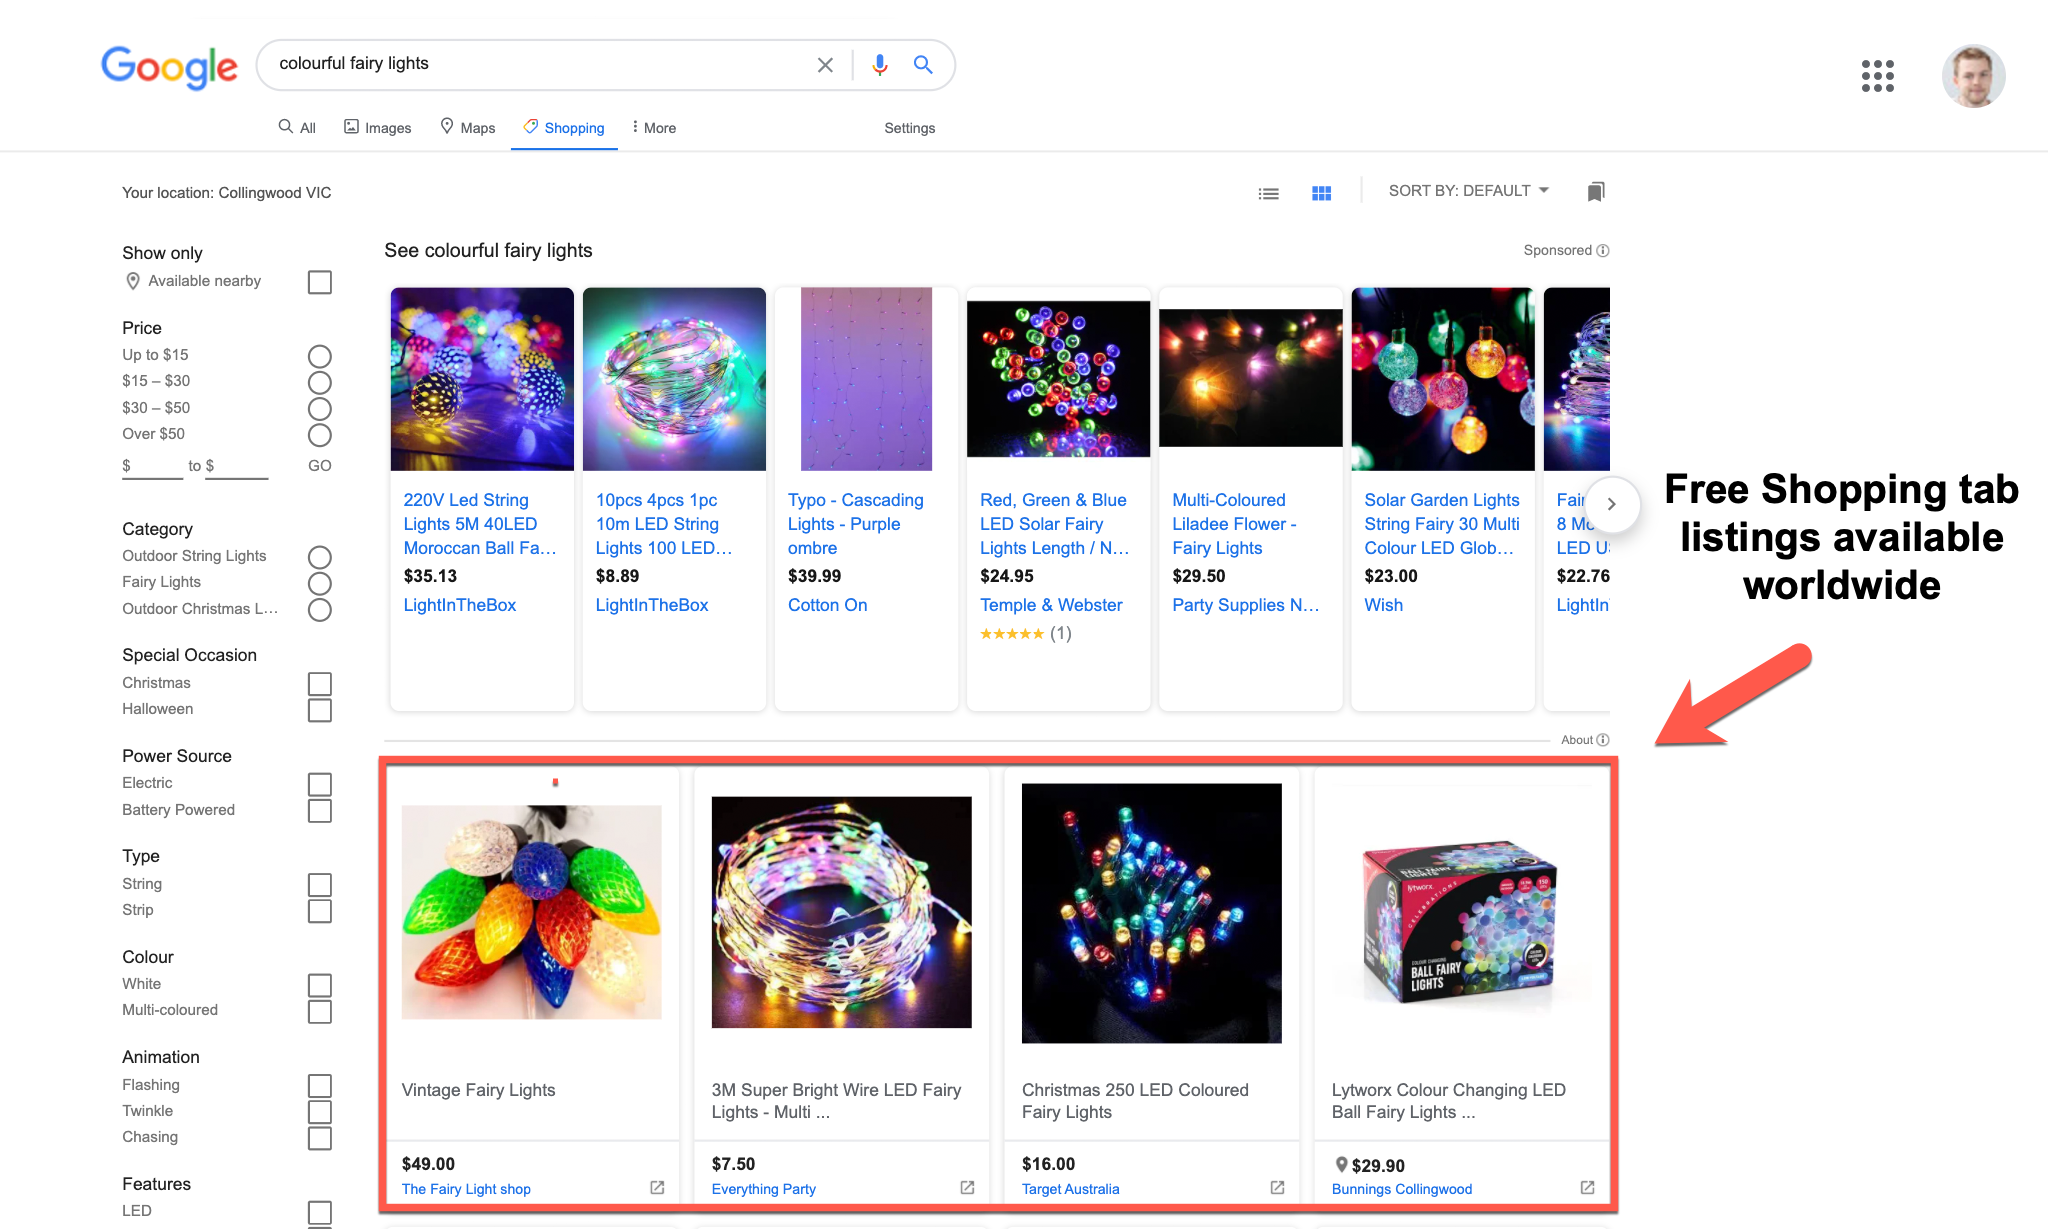 google unpaid shopping tab listing official launch